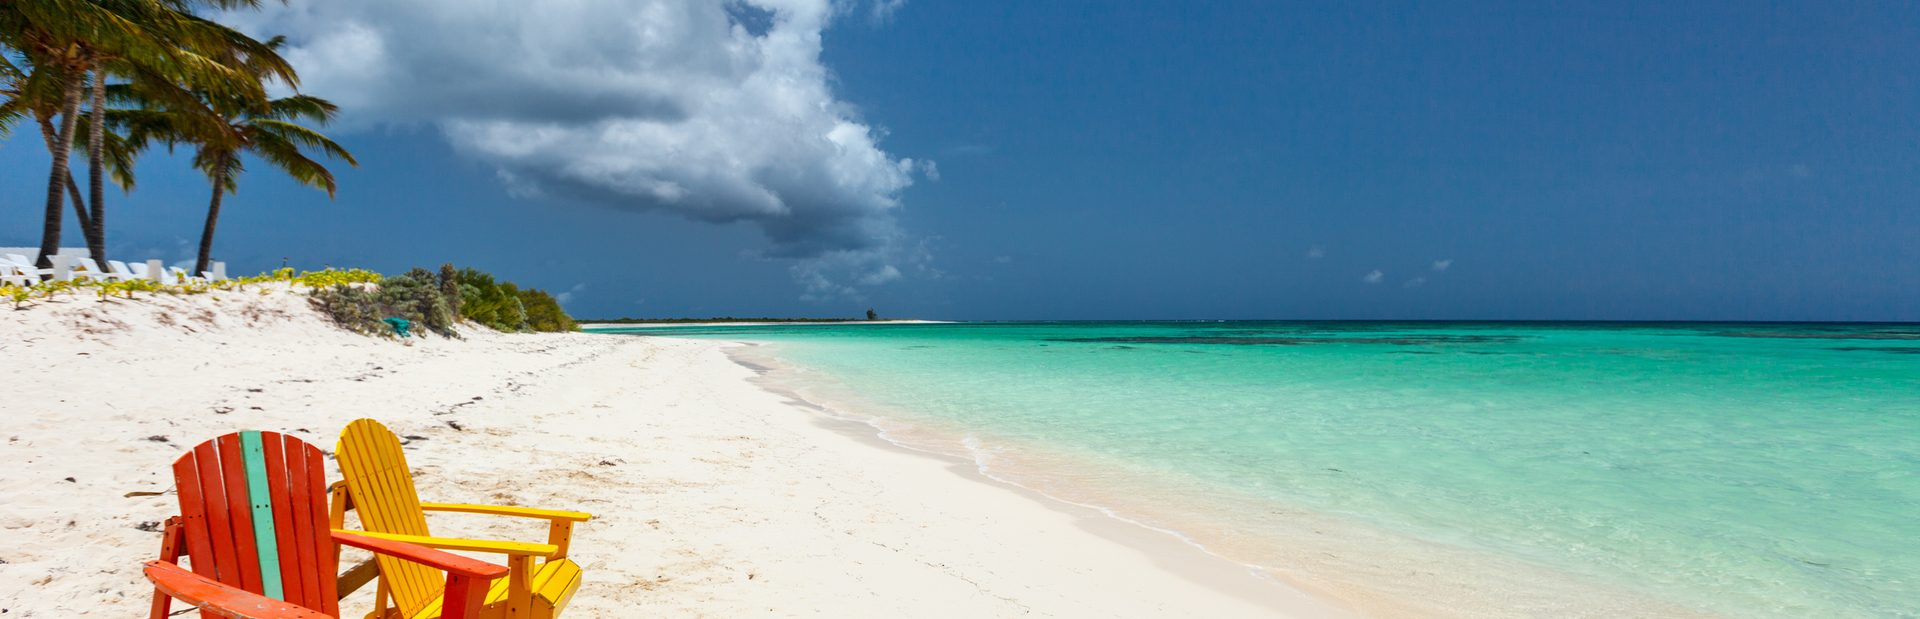 Anegada Island photo tour